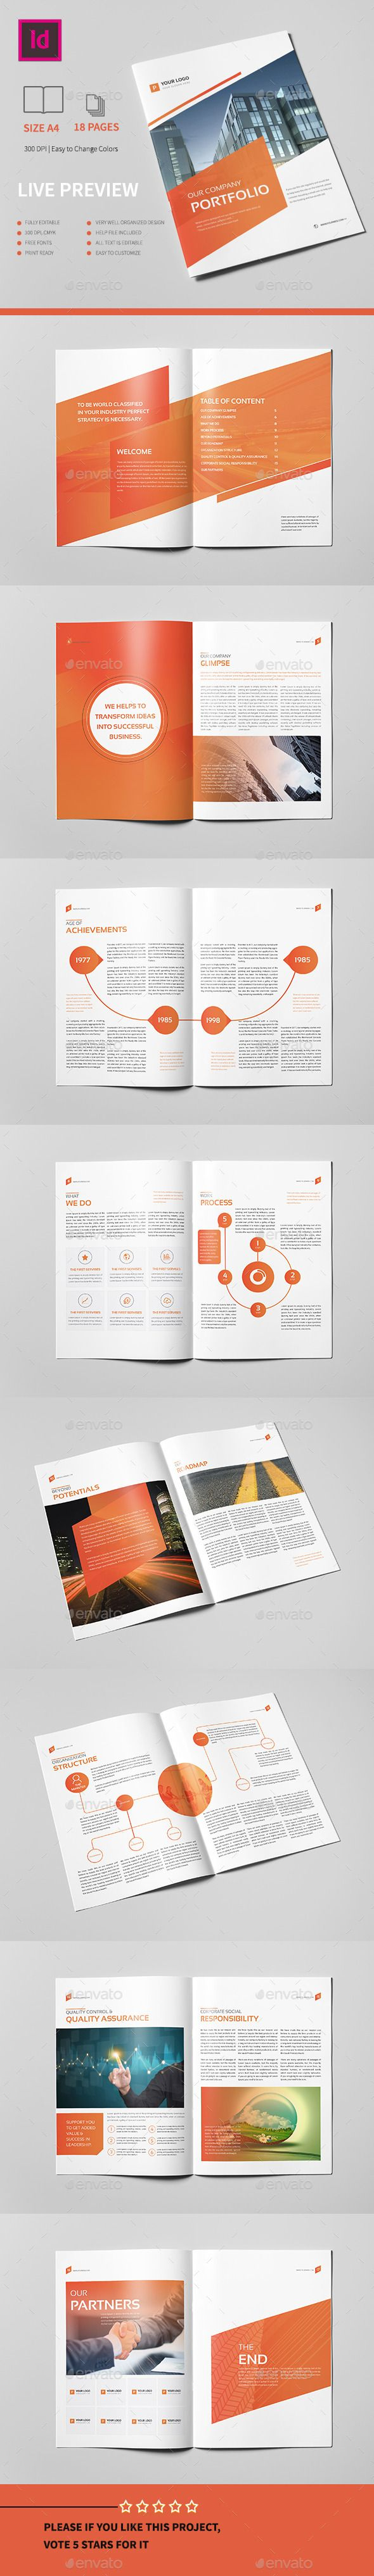 Corporate Portfolio Brochure Pages A Brochures Editorial - Pages brochure templates